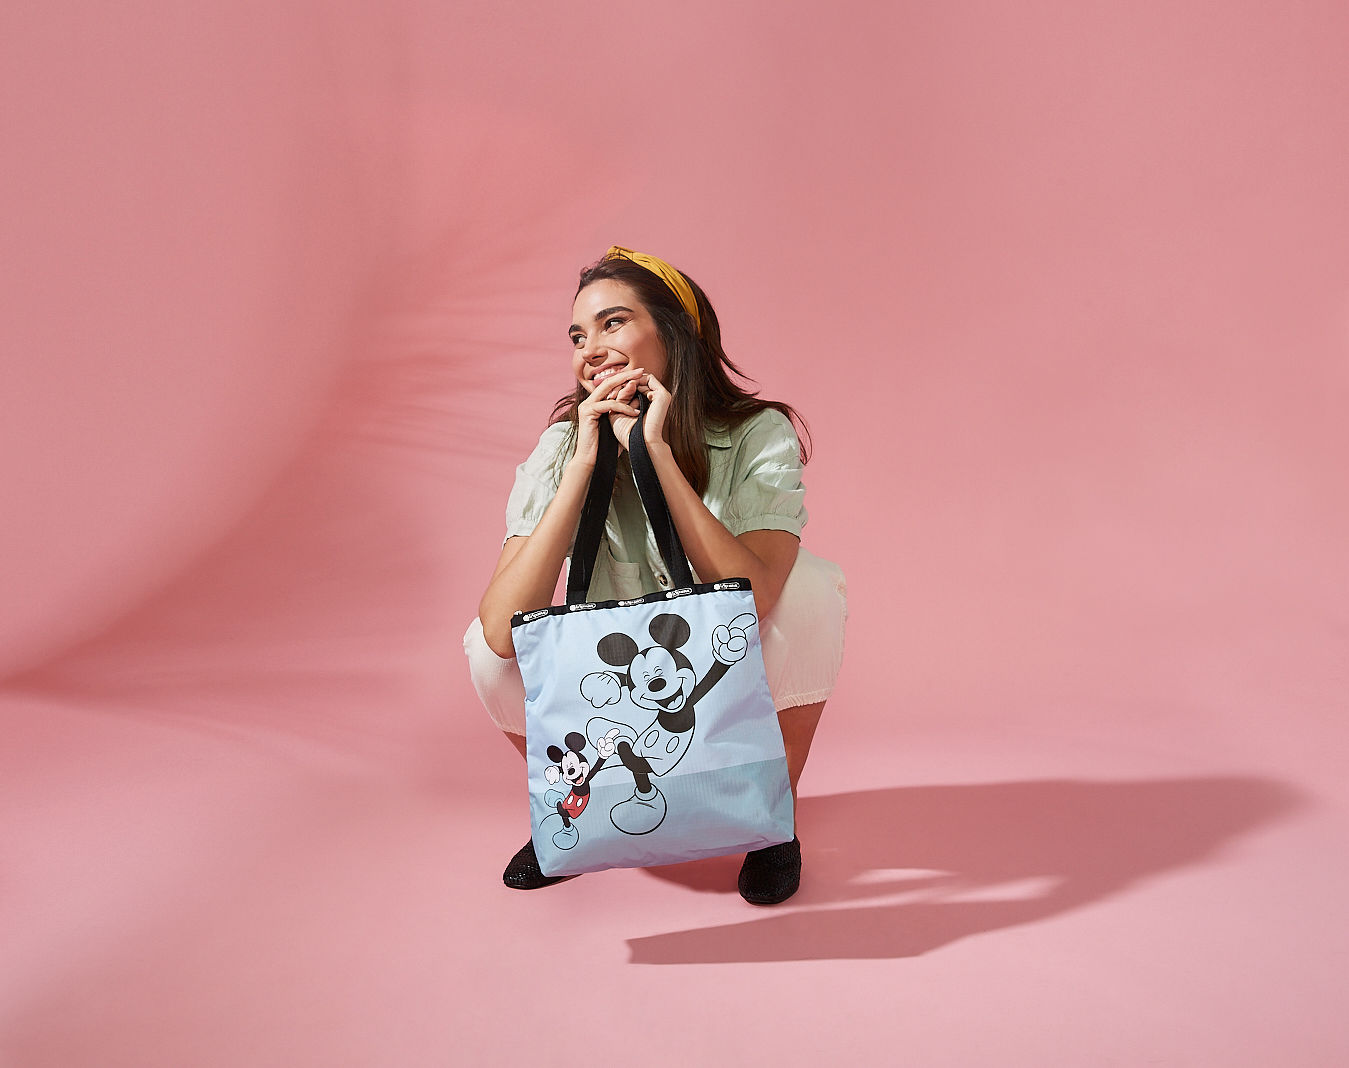 Summer Mickey and Friends capsule collection by LeSportsac and Disney - THE EDGE SINGAPORE